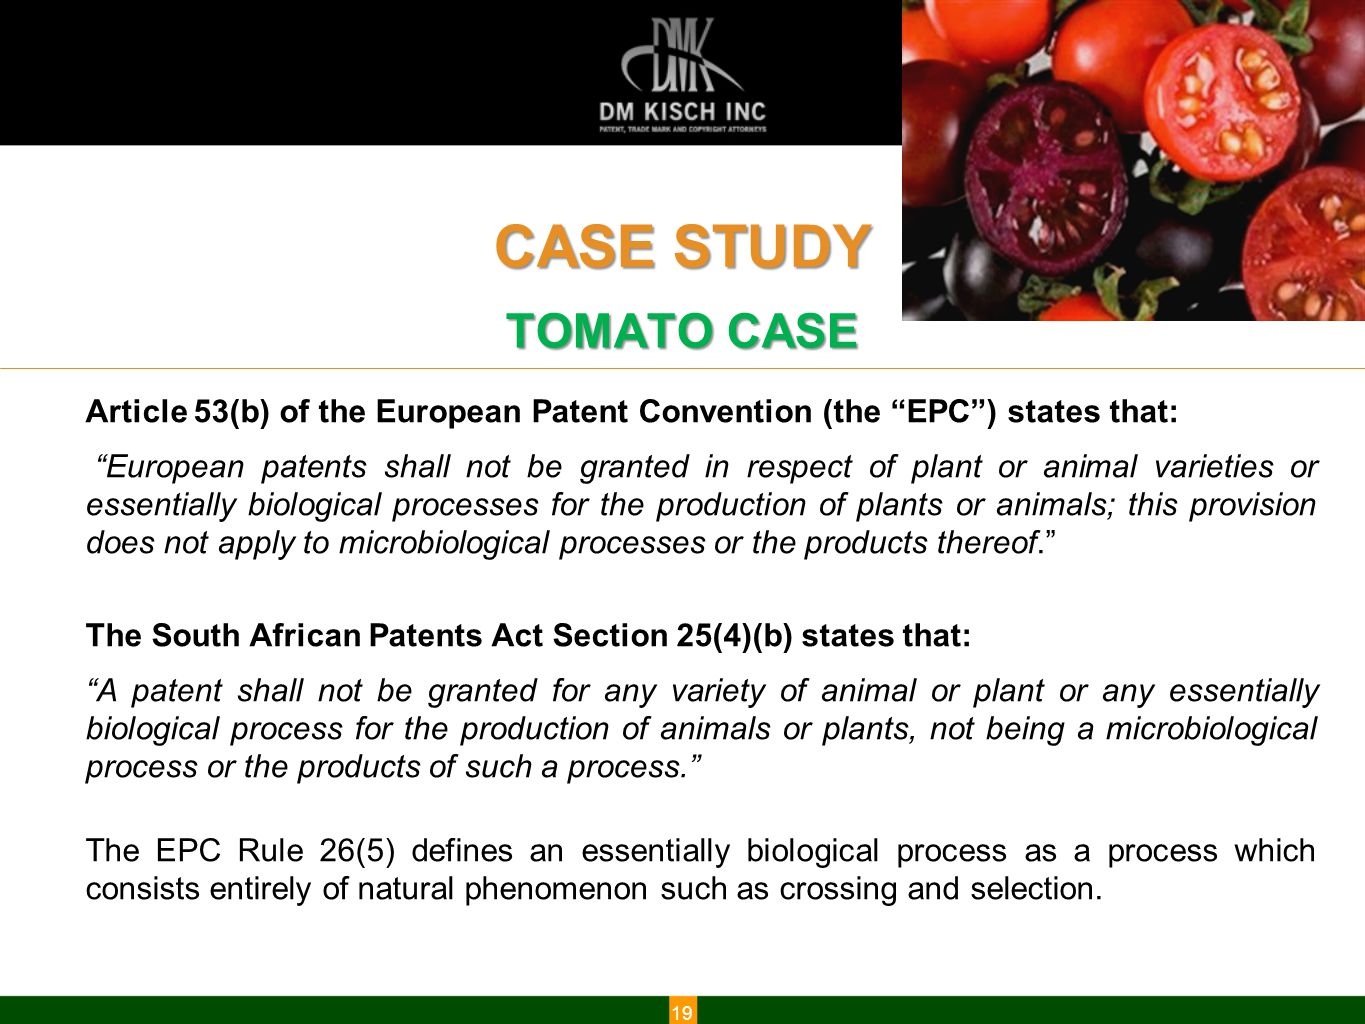 www.dmkisch.com CASE STUDY TOMATO CASE 19 Article 53(b) of the European Patent Convention (the EPC ) states that: European patents shall not be granted in respect of plant or animal varieties or essentially biological processes for the production of plants or animals; this provision does not apply to microbiological processes or the products thereof. The South African Patents Act Section 25(4)(b) states that: A patent shall not be granted for any variety of animal or plant or any essentially biological process for the production of animals or plants, not being a microbiological process or the products of such a process. The EPC Rule 26(5) defines an essentially biological process as a process which consists entirely of natural phenomenon such as crossing and selection.